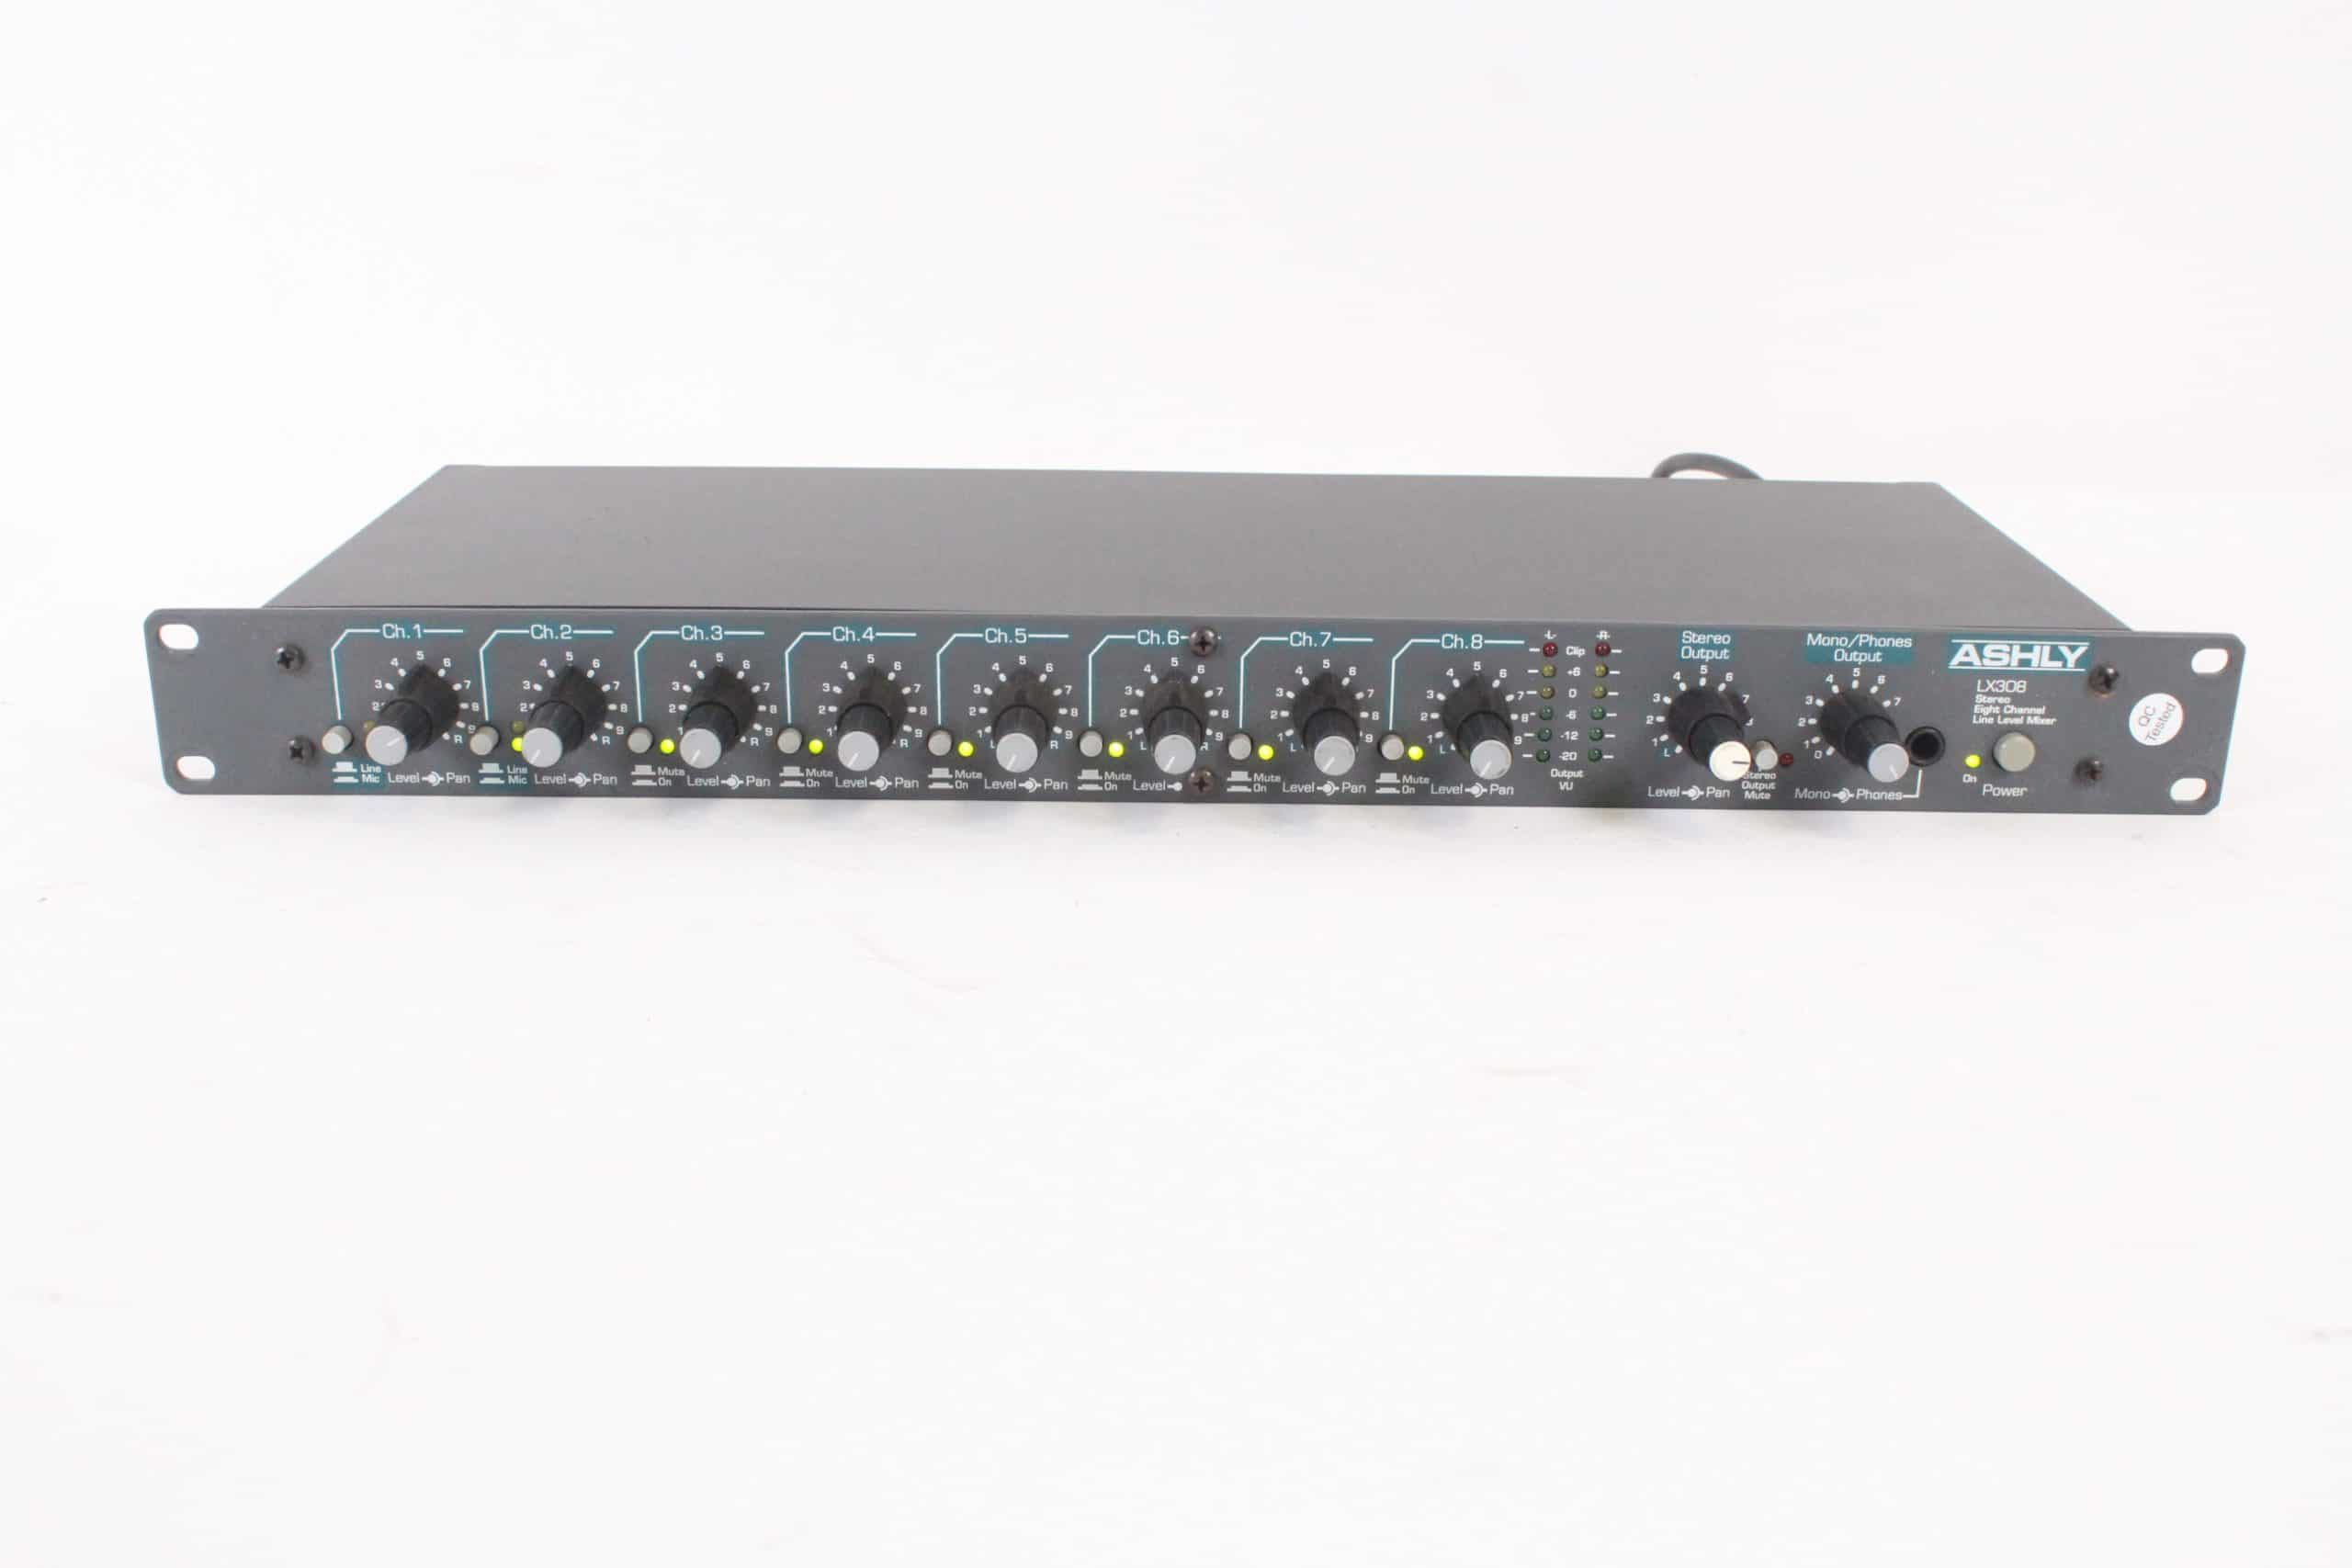 ashly-lx308-stereo-eight-channel-line-level-mixer main